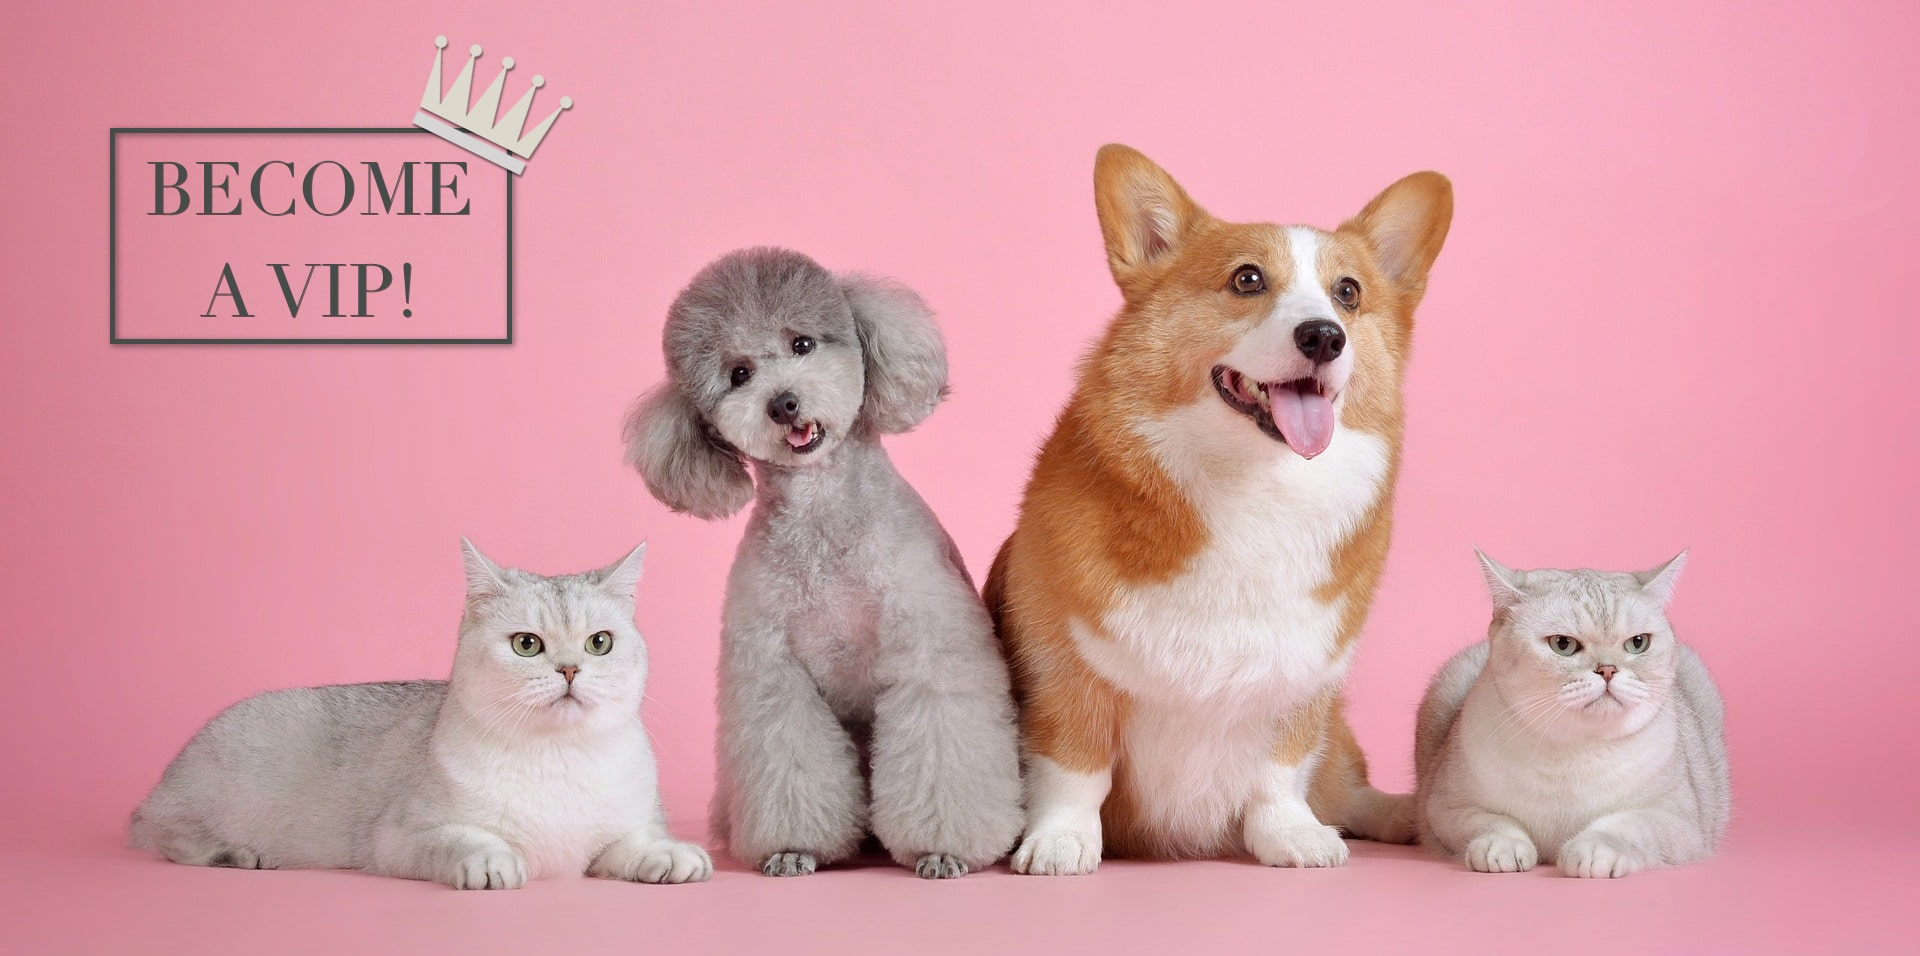 Two British shorthair cats, a poodle and a corgi sit on a pink background - advertising the Lords & Labradors VIP Club - click to sign up